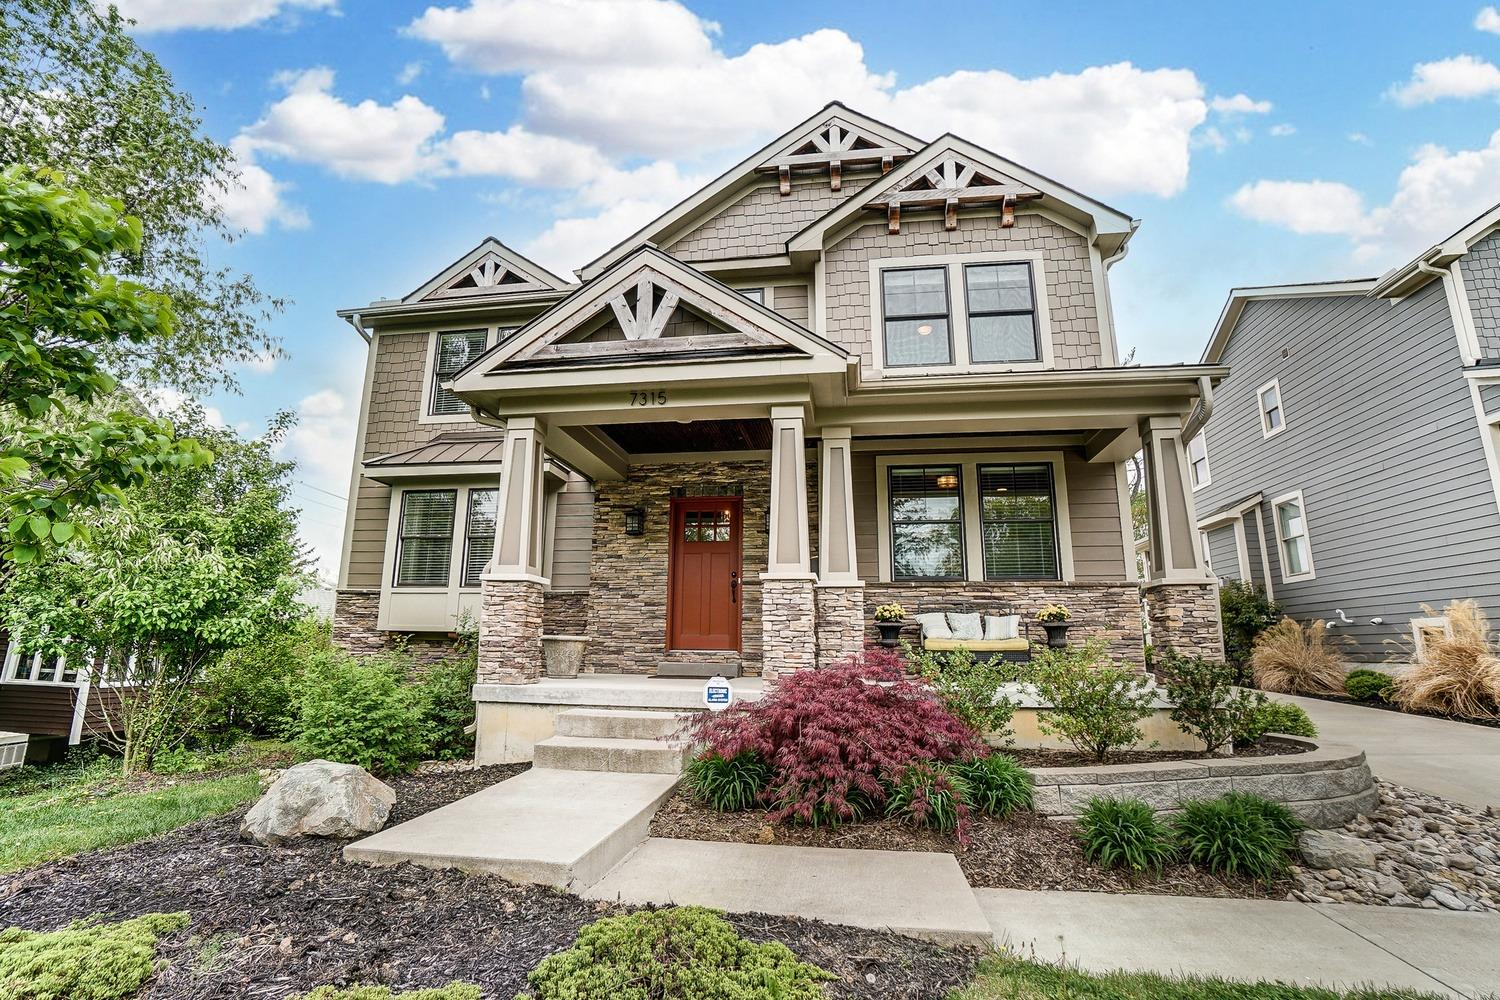 Better than new - 2016 Hoffmaster Build w/thoughtful details & quality craftsmanship throughout! Just blocks away from D/T Madeira, this home has it all! G/R w/coffered ceiling & floor2ceiling stone stacked fireplace. Gourmet kitchen w/eat-in area, ctr bar, granite ctrtops & all appl 2016. Pella Windows Fully finished LL w/full bath & Rec room. Fenced in yard w/covered patio. Phantom Sound system w/hidden speakers & sub-woofer, HVAC system w/humidifier & UV filter; smart design+quality finishes